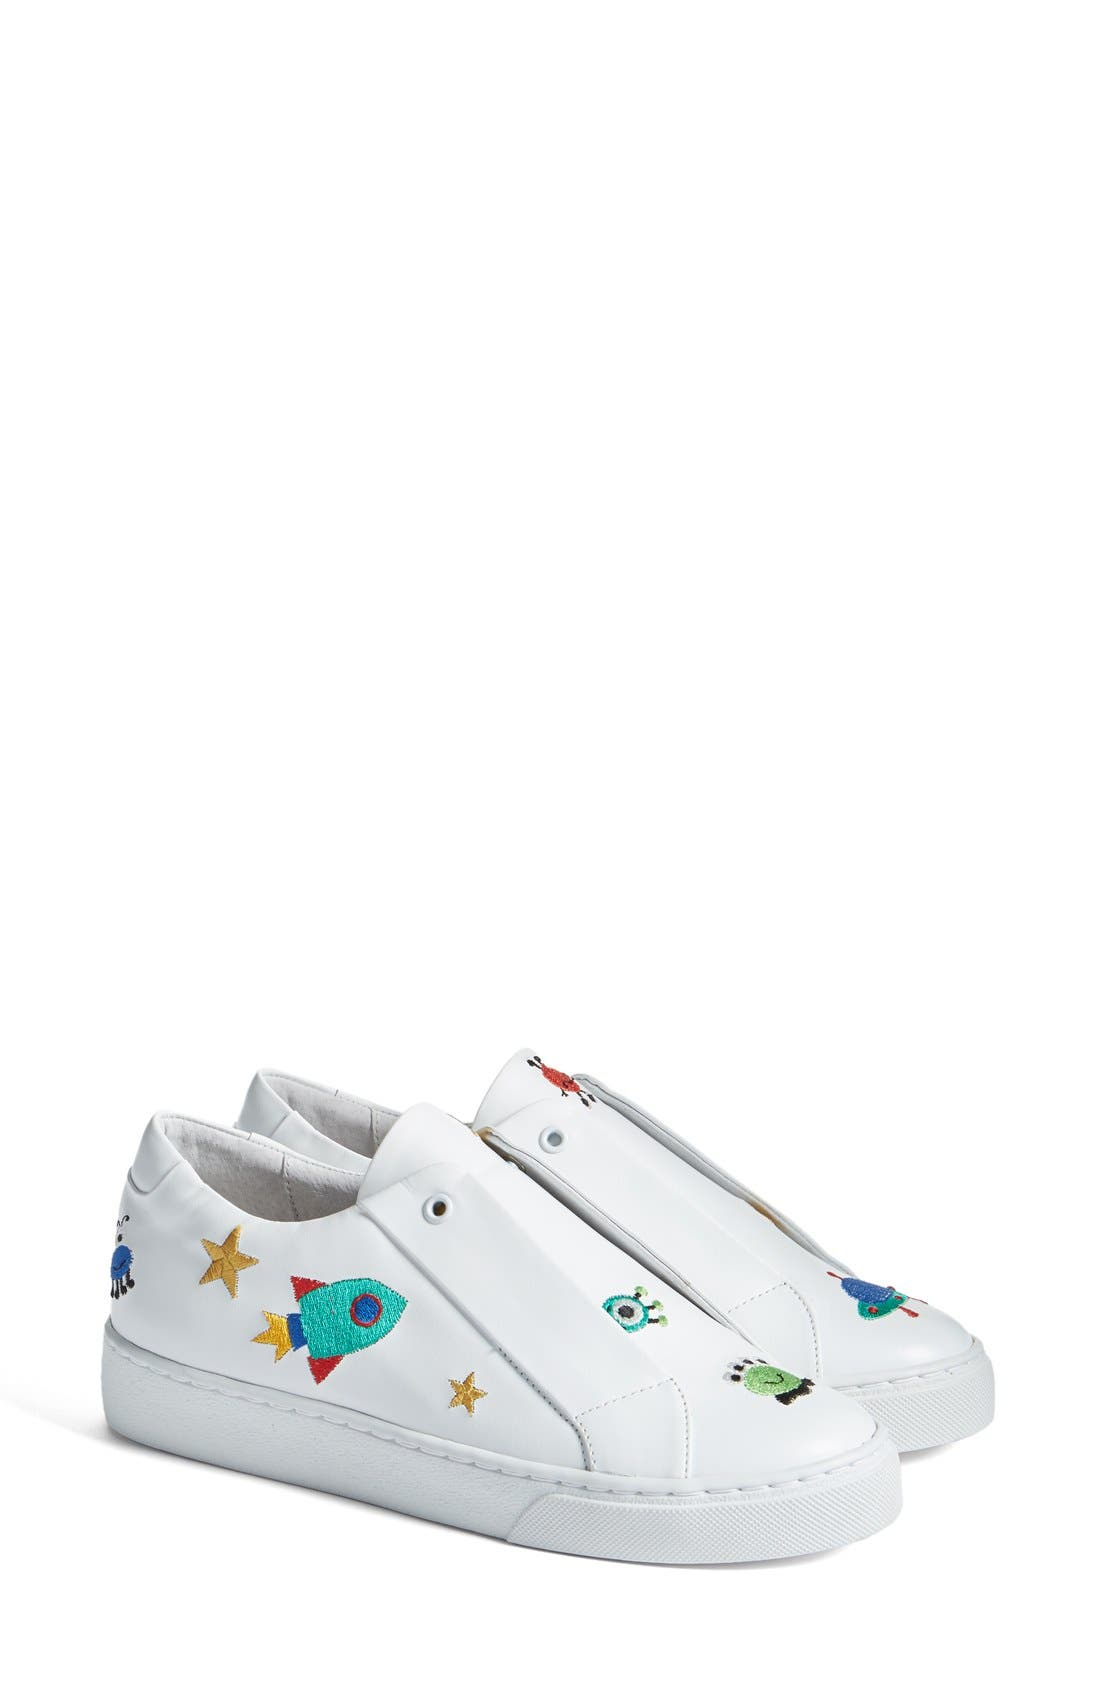 Main Image - Here / Now Halley Slip-On Sneaker (Women)